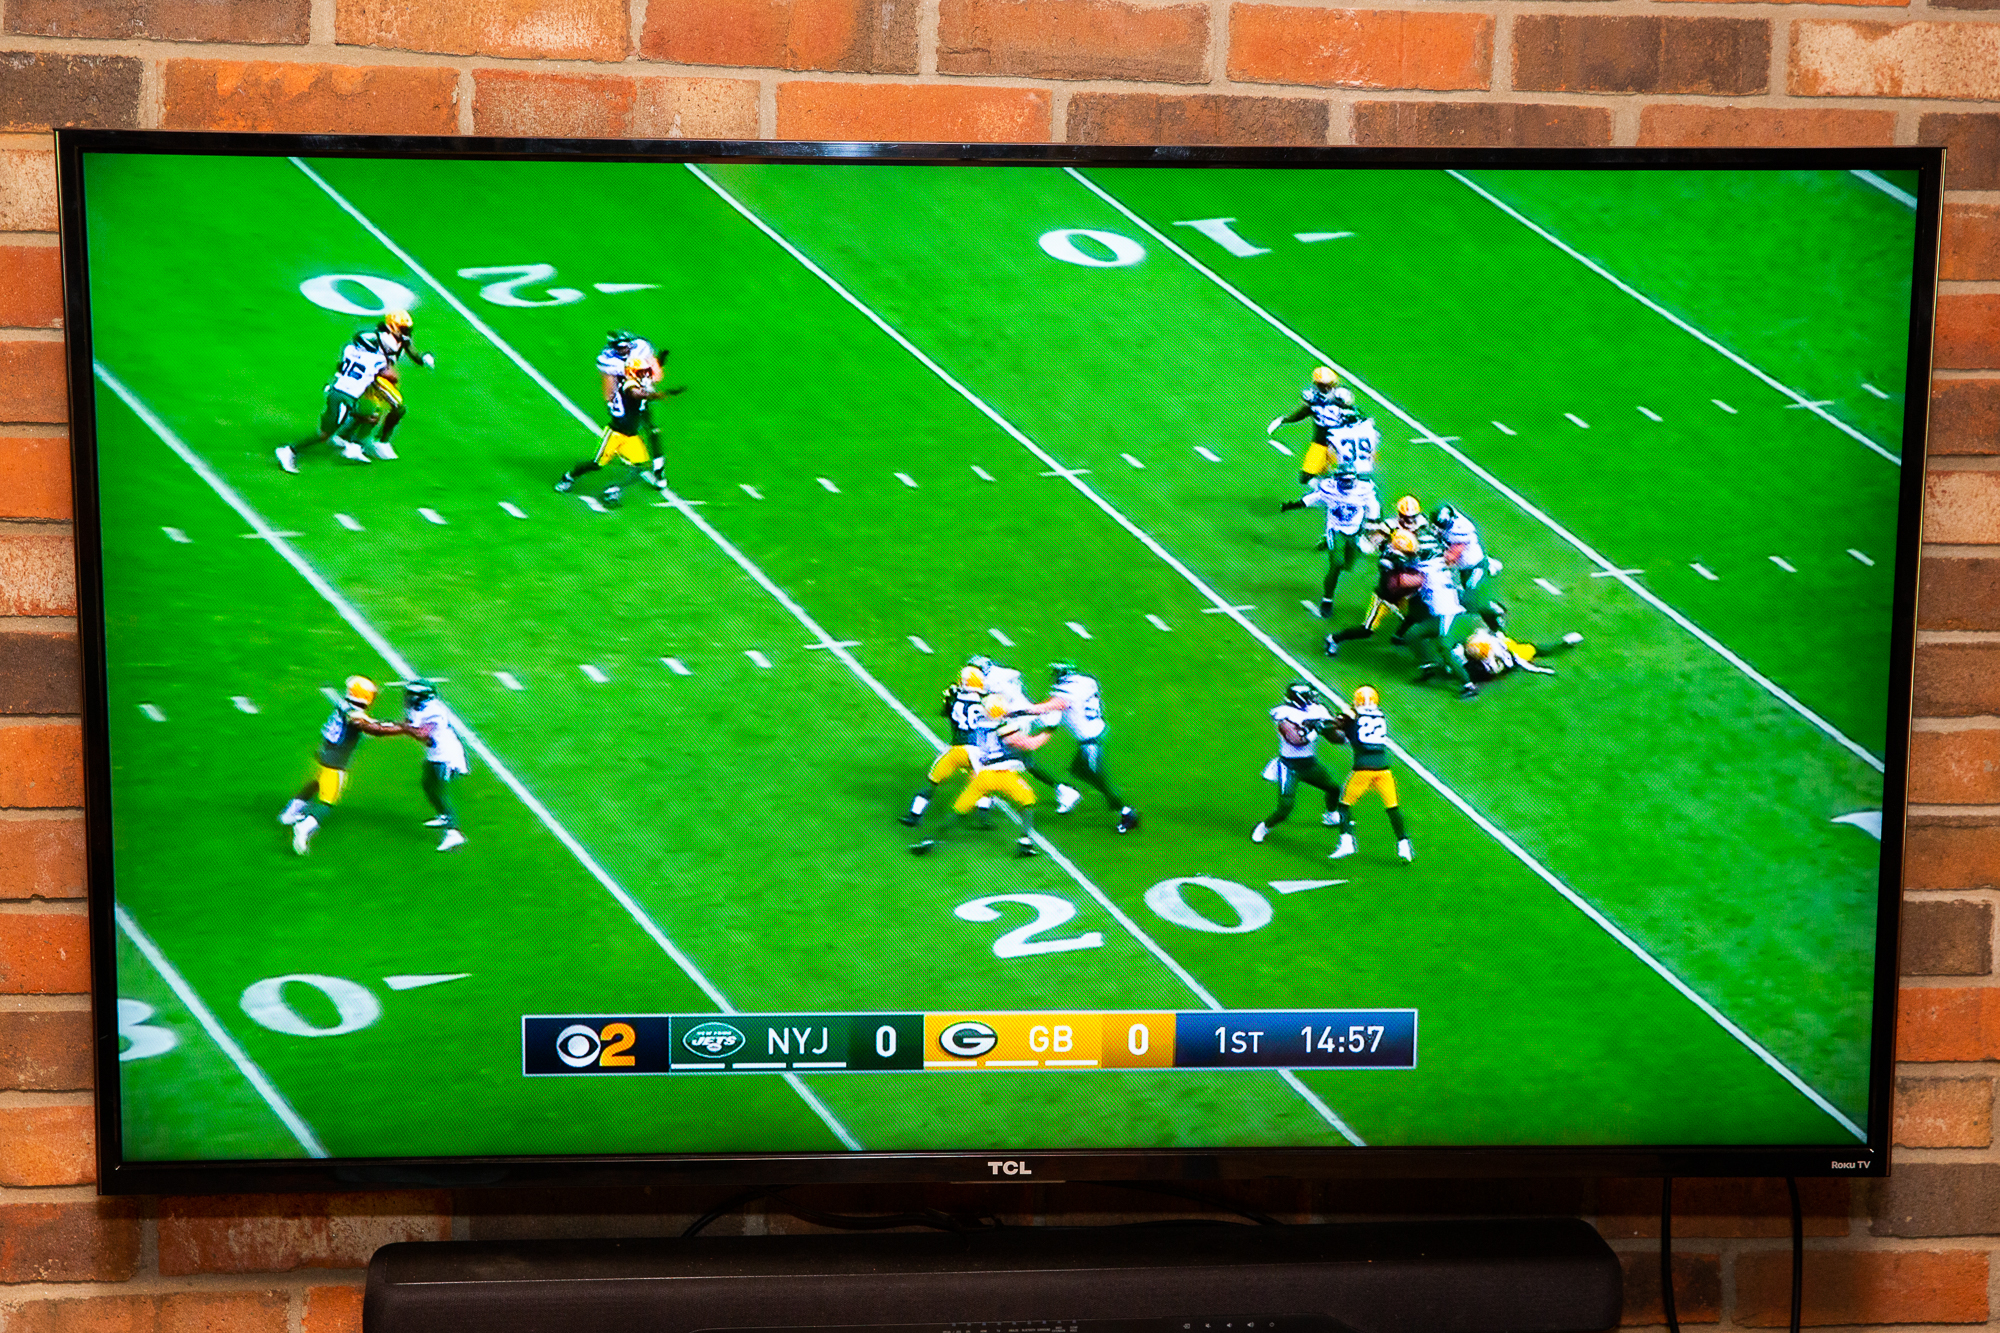 How to watch football on your TV